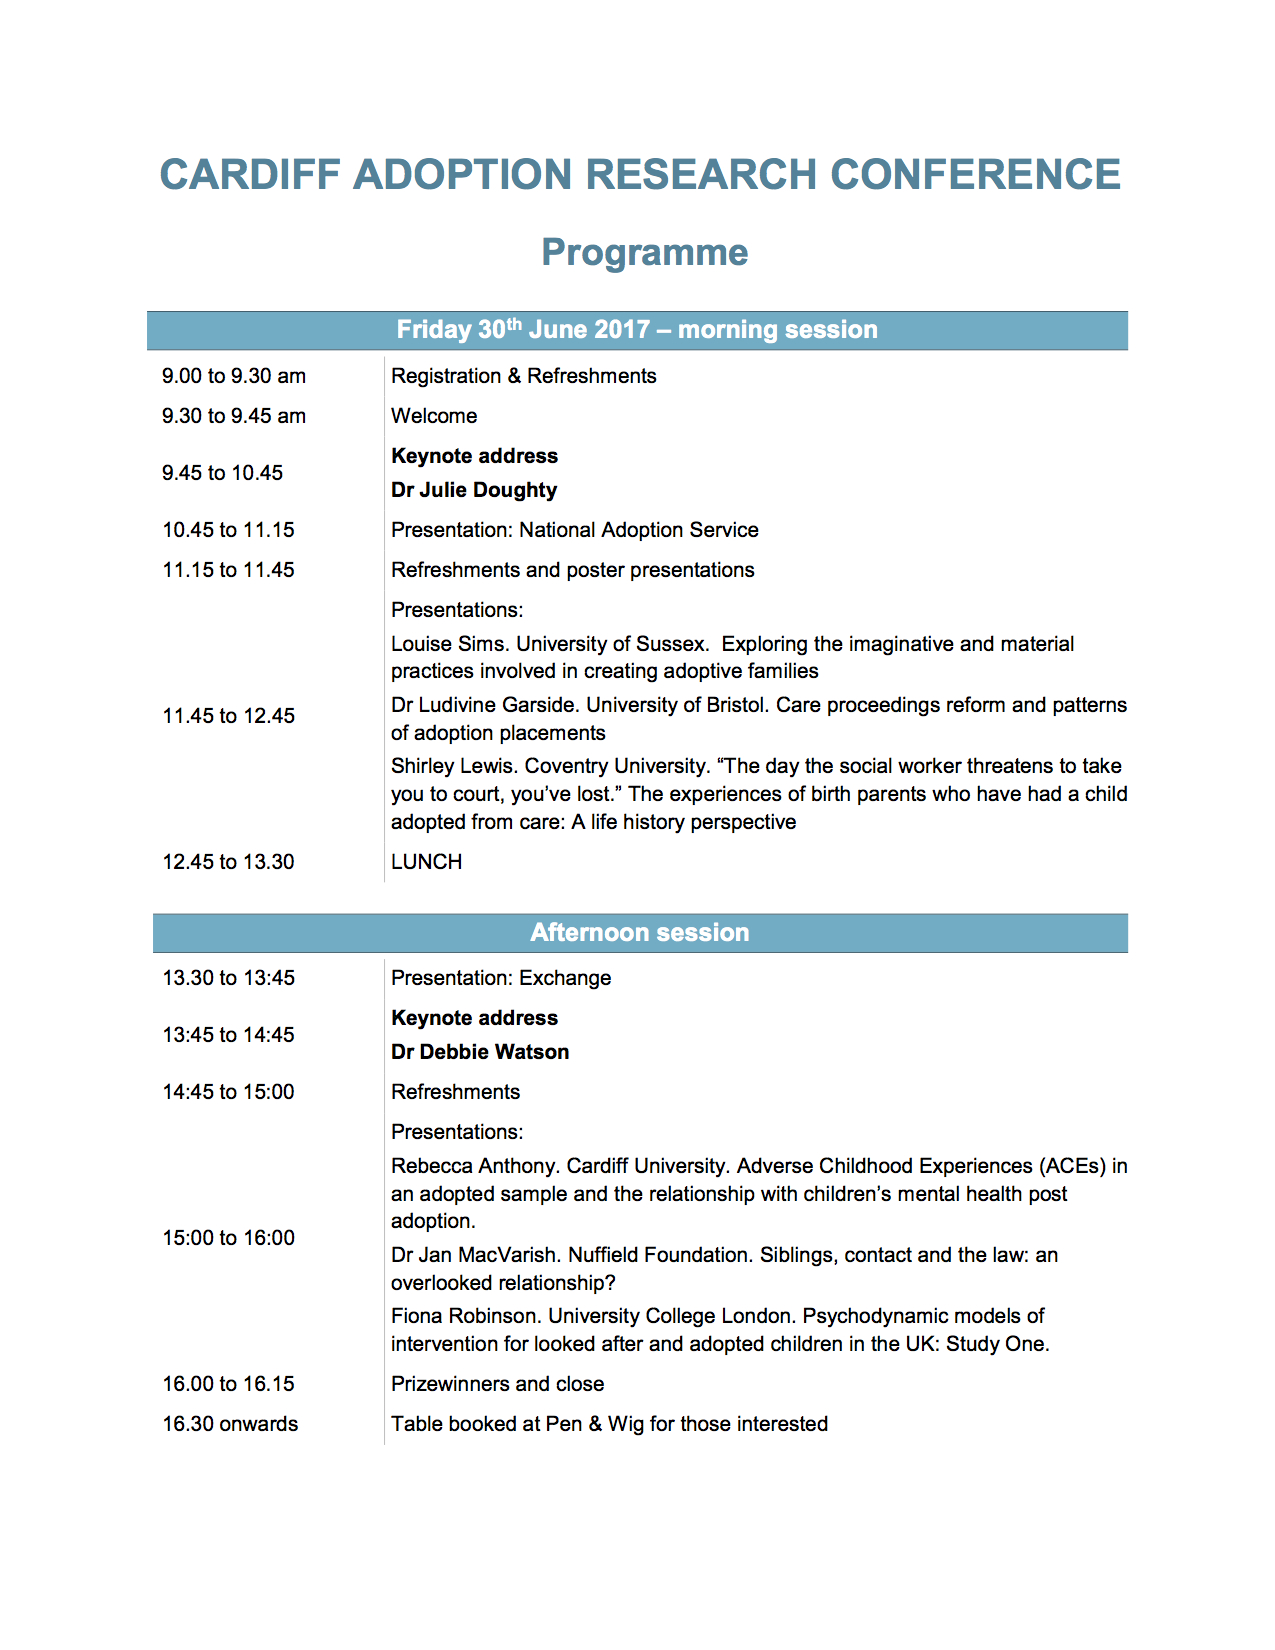 Cardiff Adoption Research Conference DRAFT programme